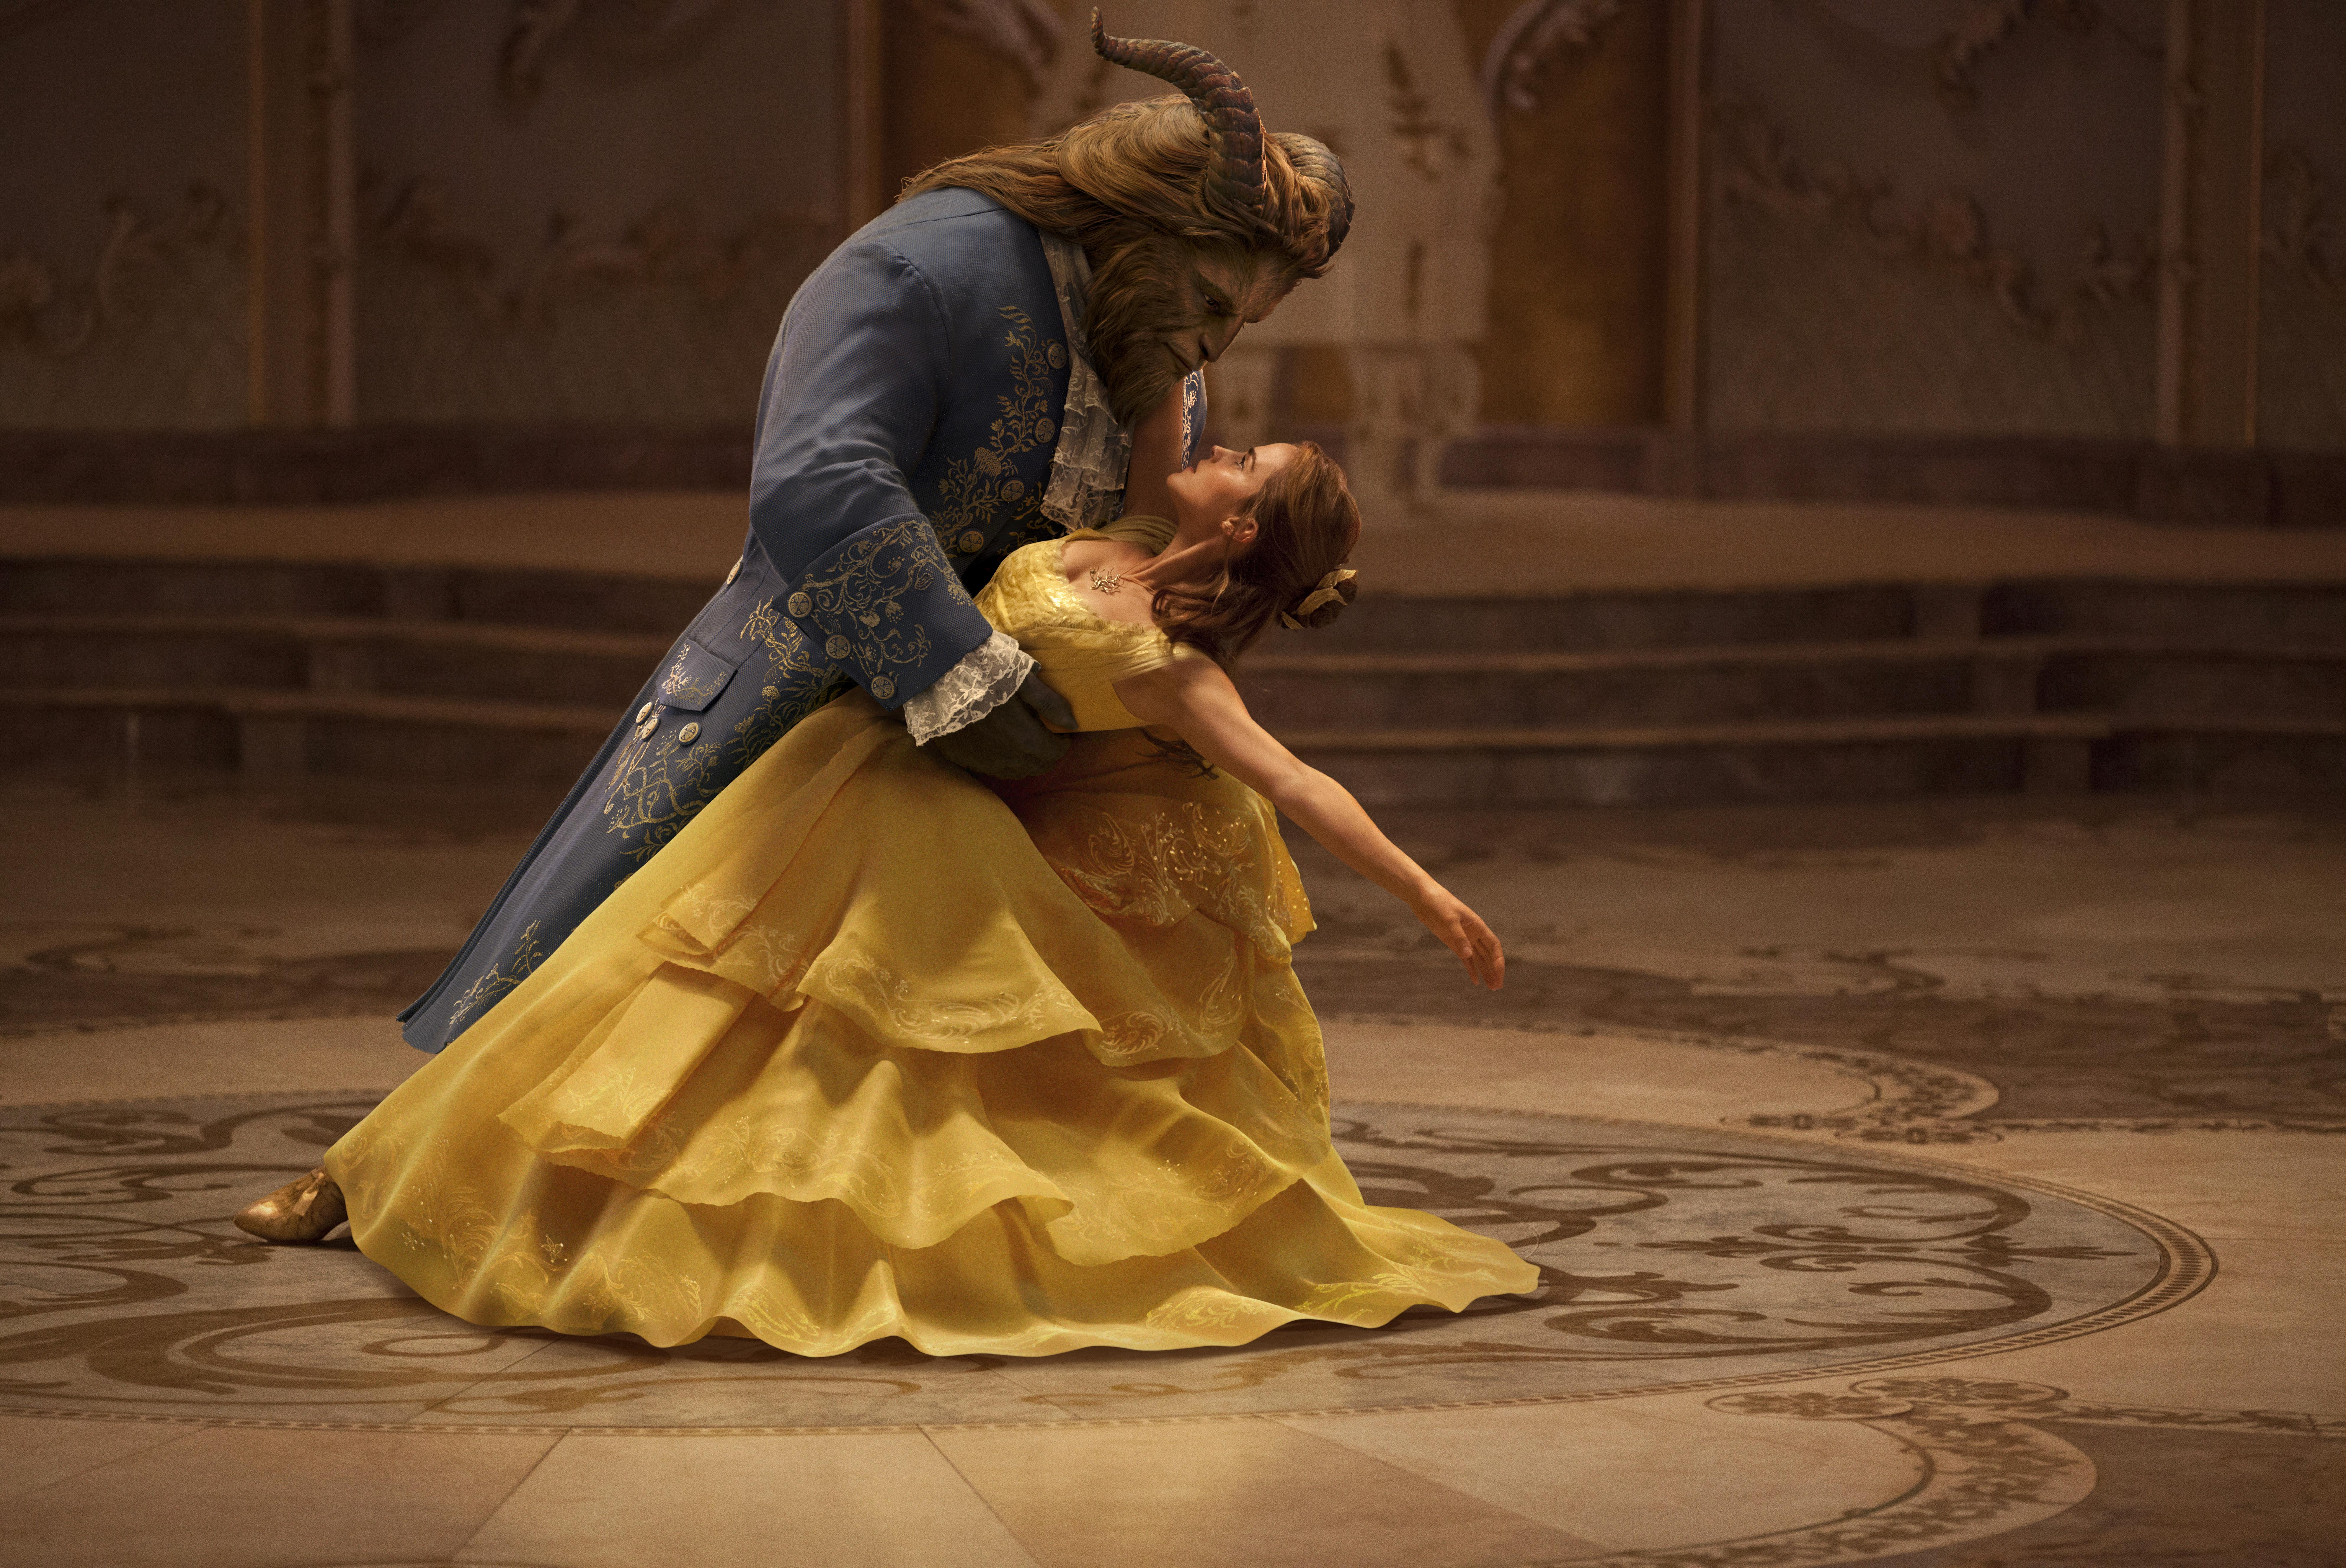 'Beauty and the Beast' Enchants at Box Office with $357 Million Worldwide Debut